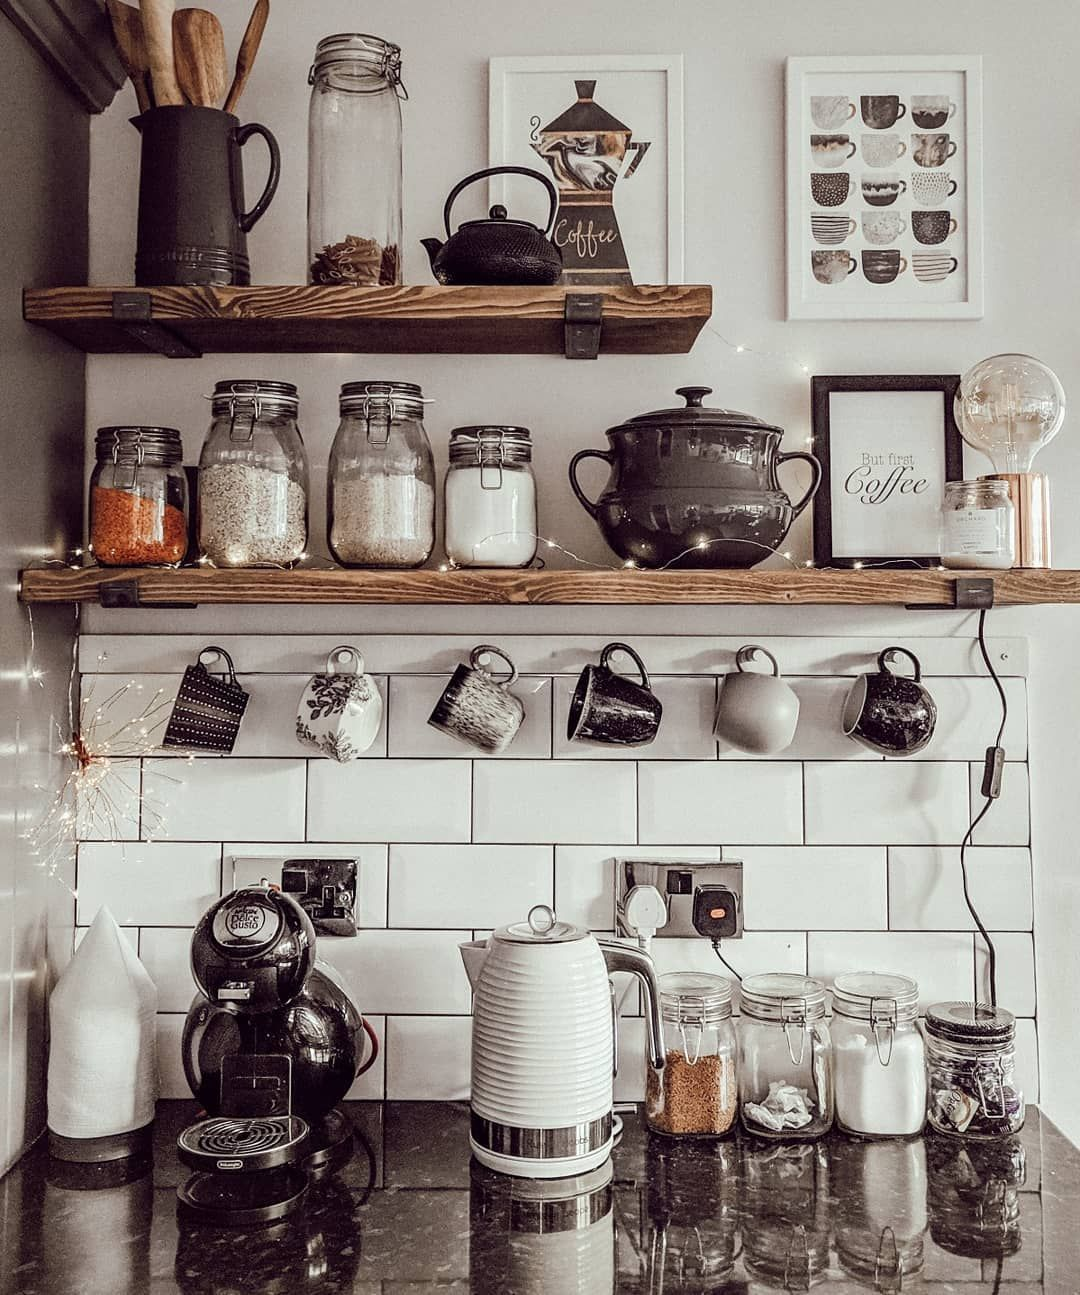 Emma on Instagram myhousethismonth  day 9  I have this thing with coffee Seriously I dr Emma on Instagram myhousethismonth  day 9  I have this thing with coffee Seriously...